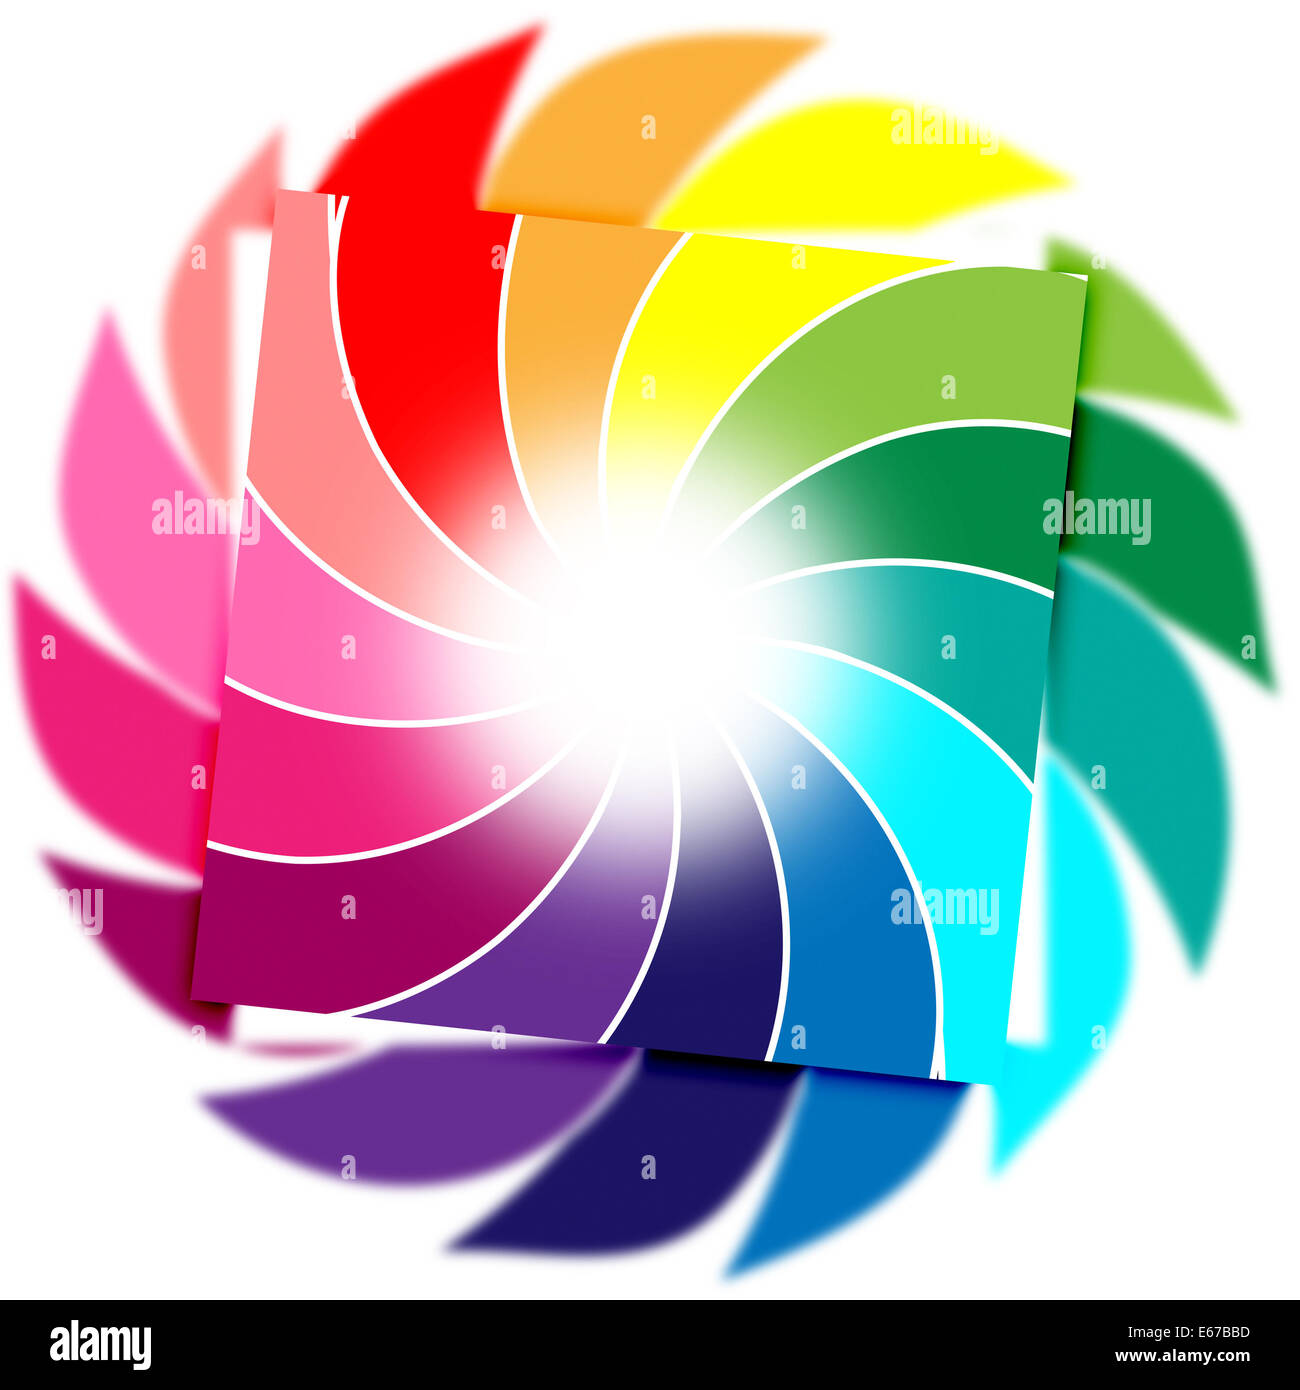 Background Spiral Representing Twist Abstract And Colours - Stock Image